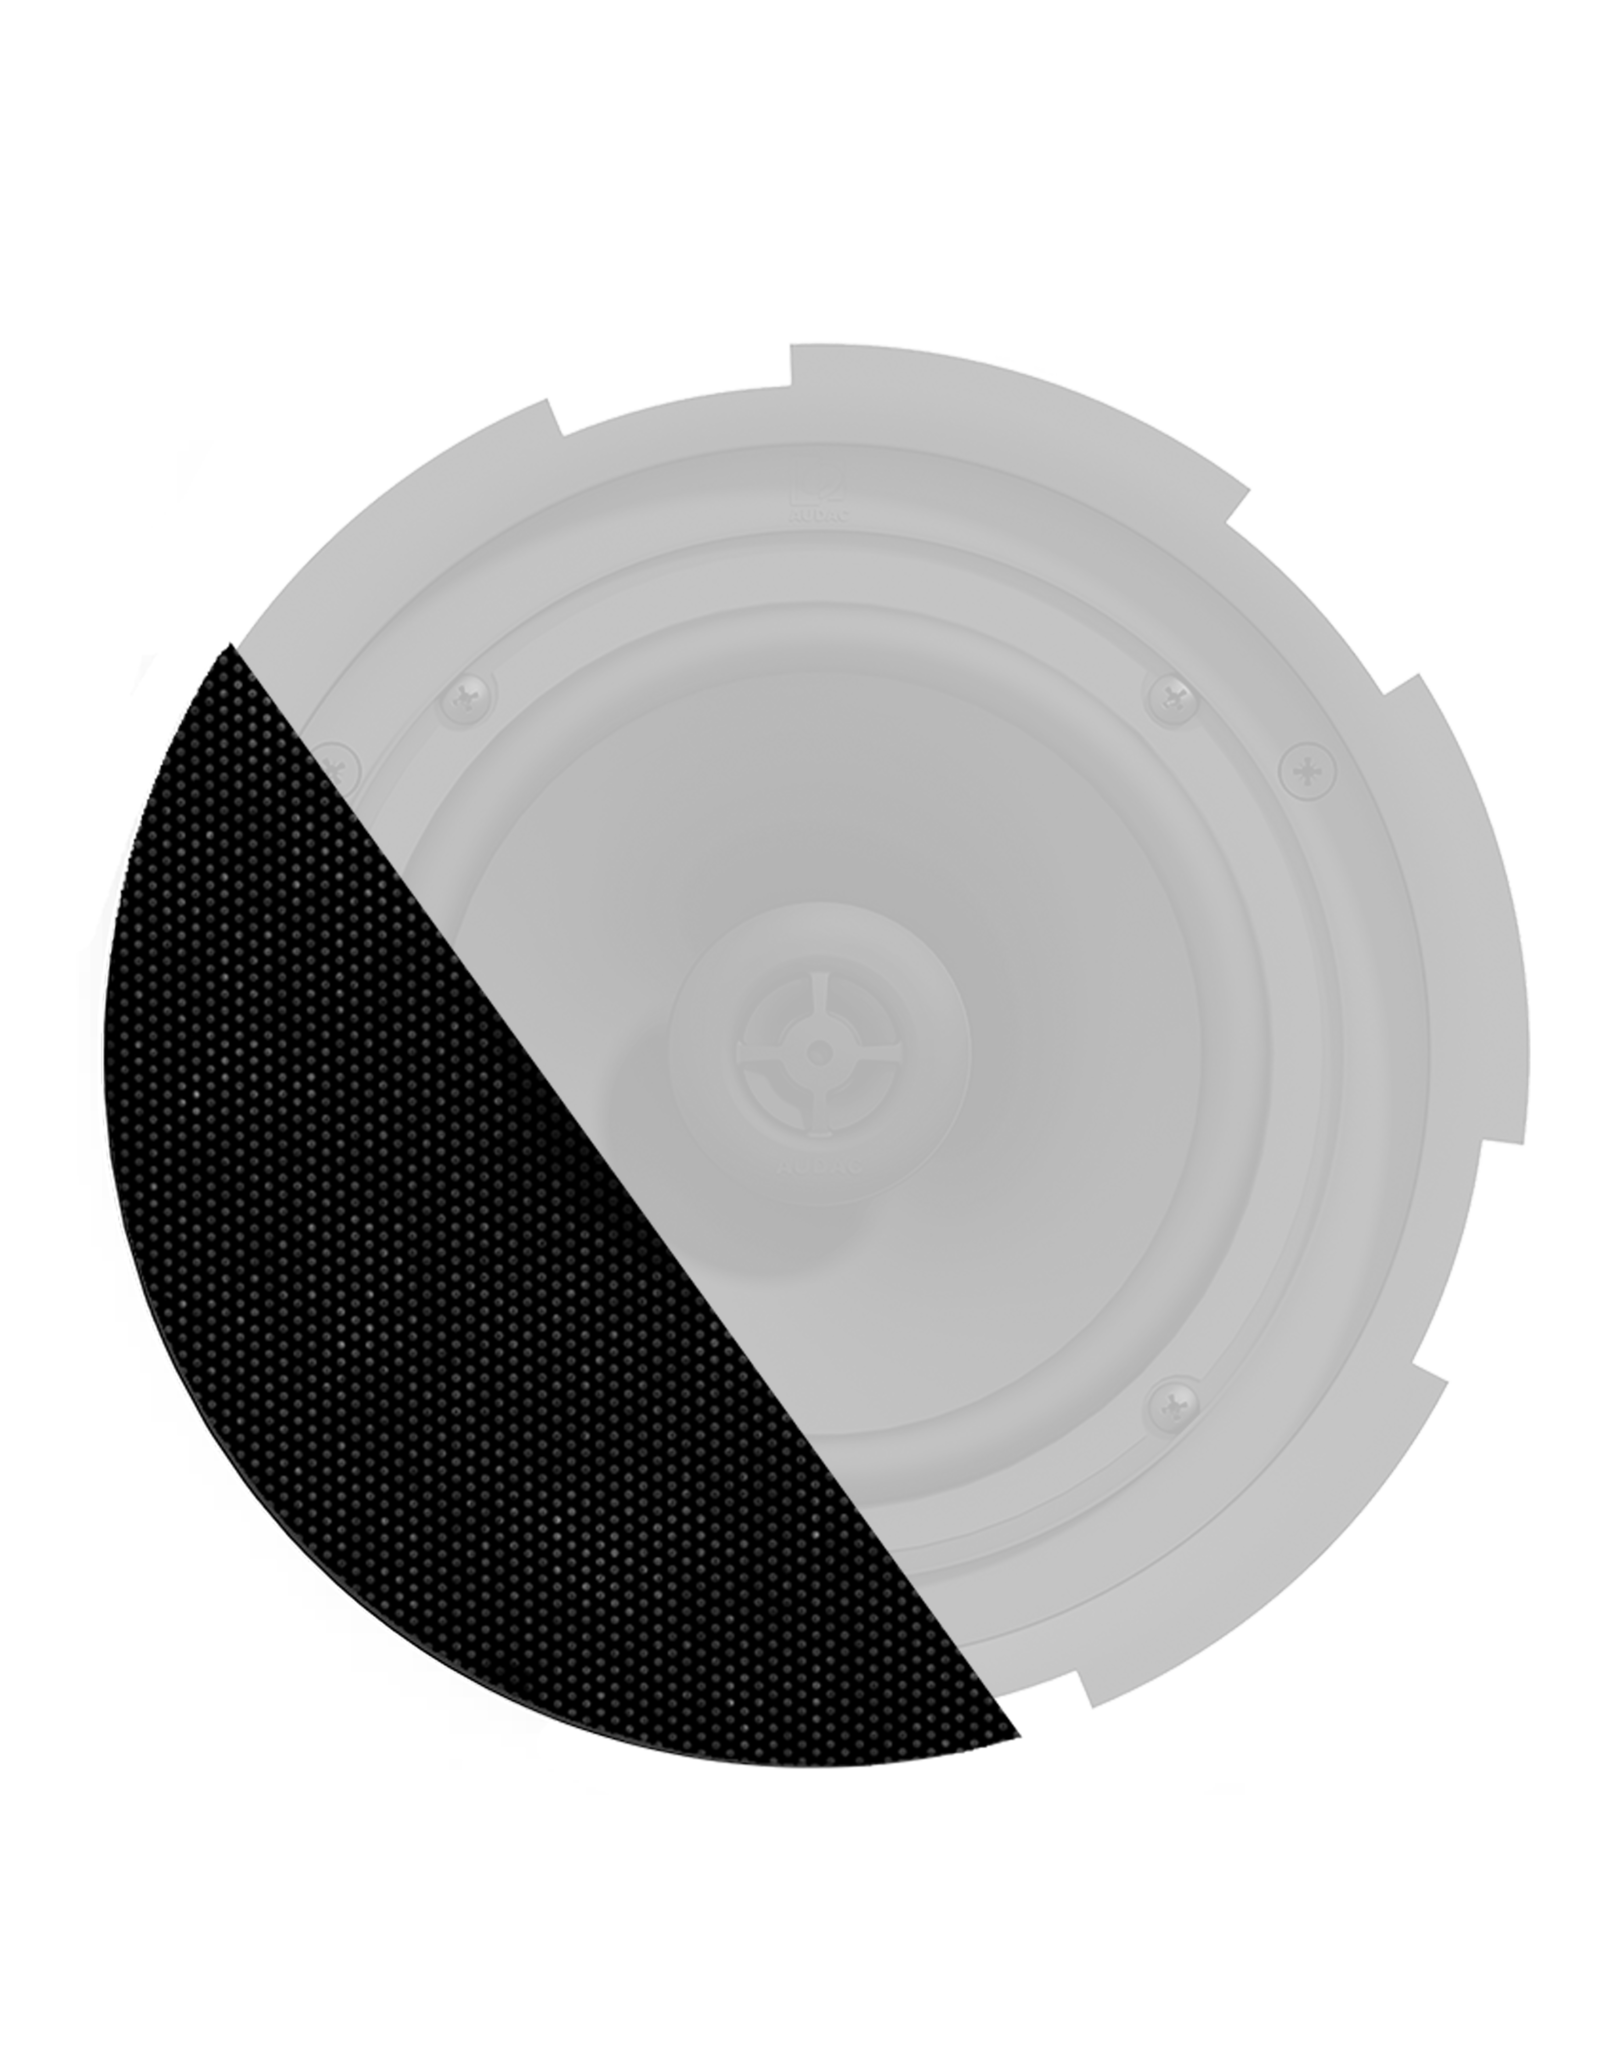 Audac Front grill for CIRA8 series speakers with cloth & outdoor treatment Black version